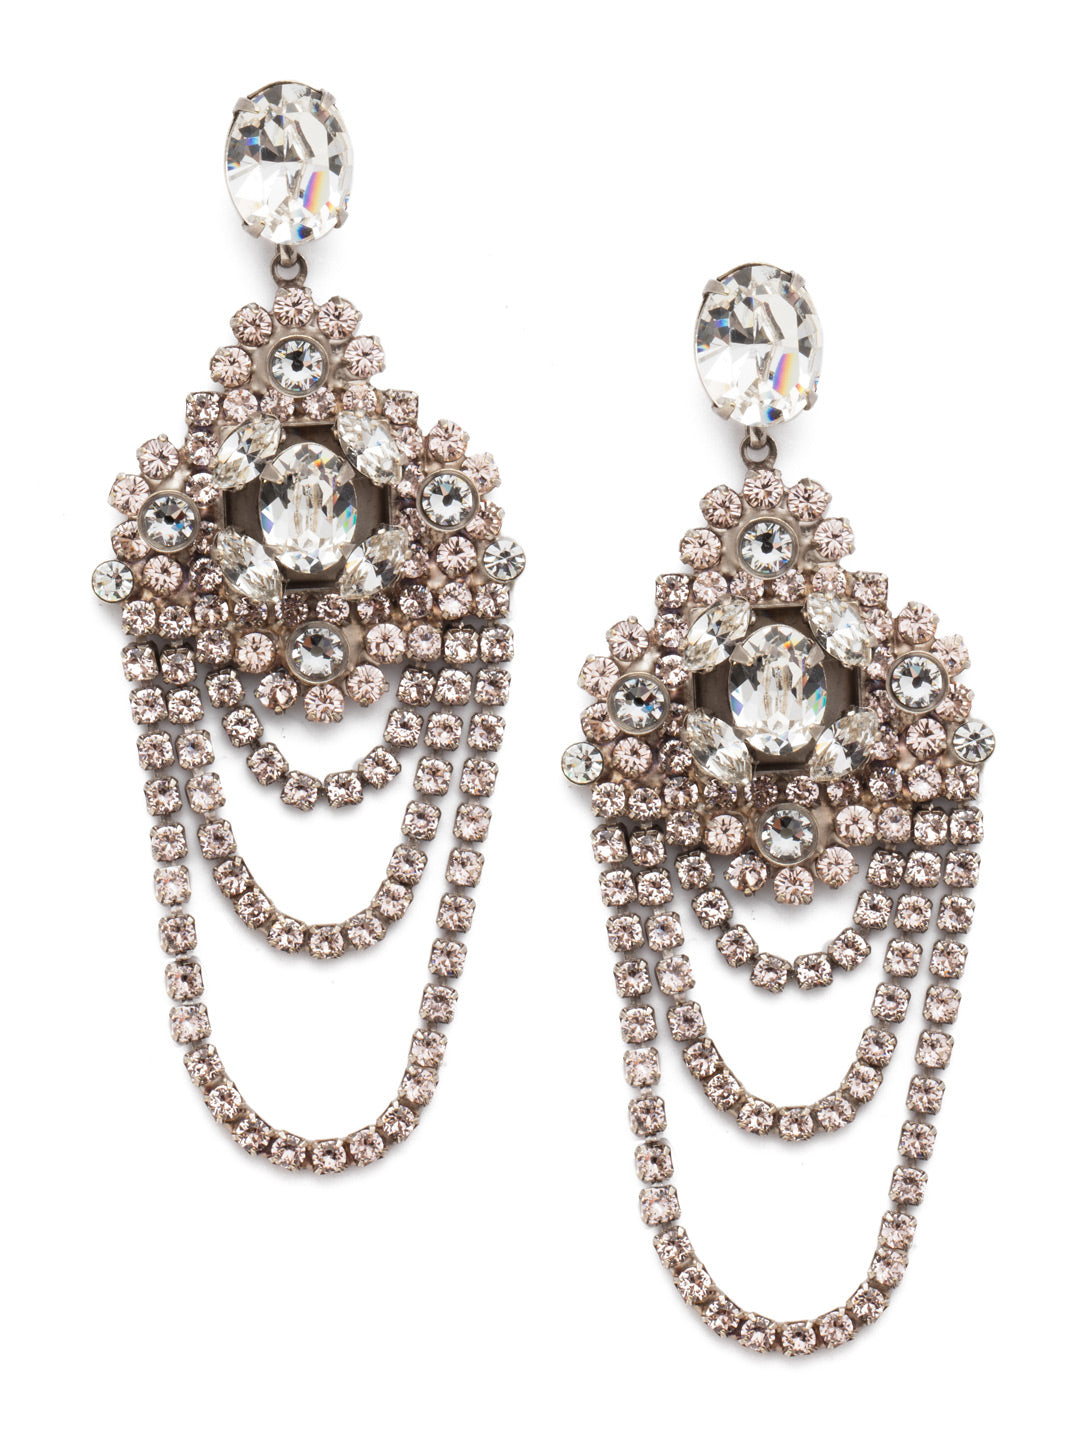 Crystal Chandelier Earrings Statement Earring - EBP49ASSBL